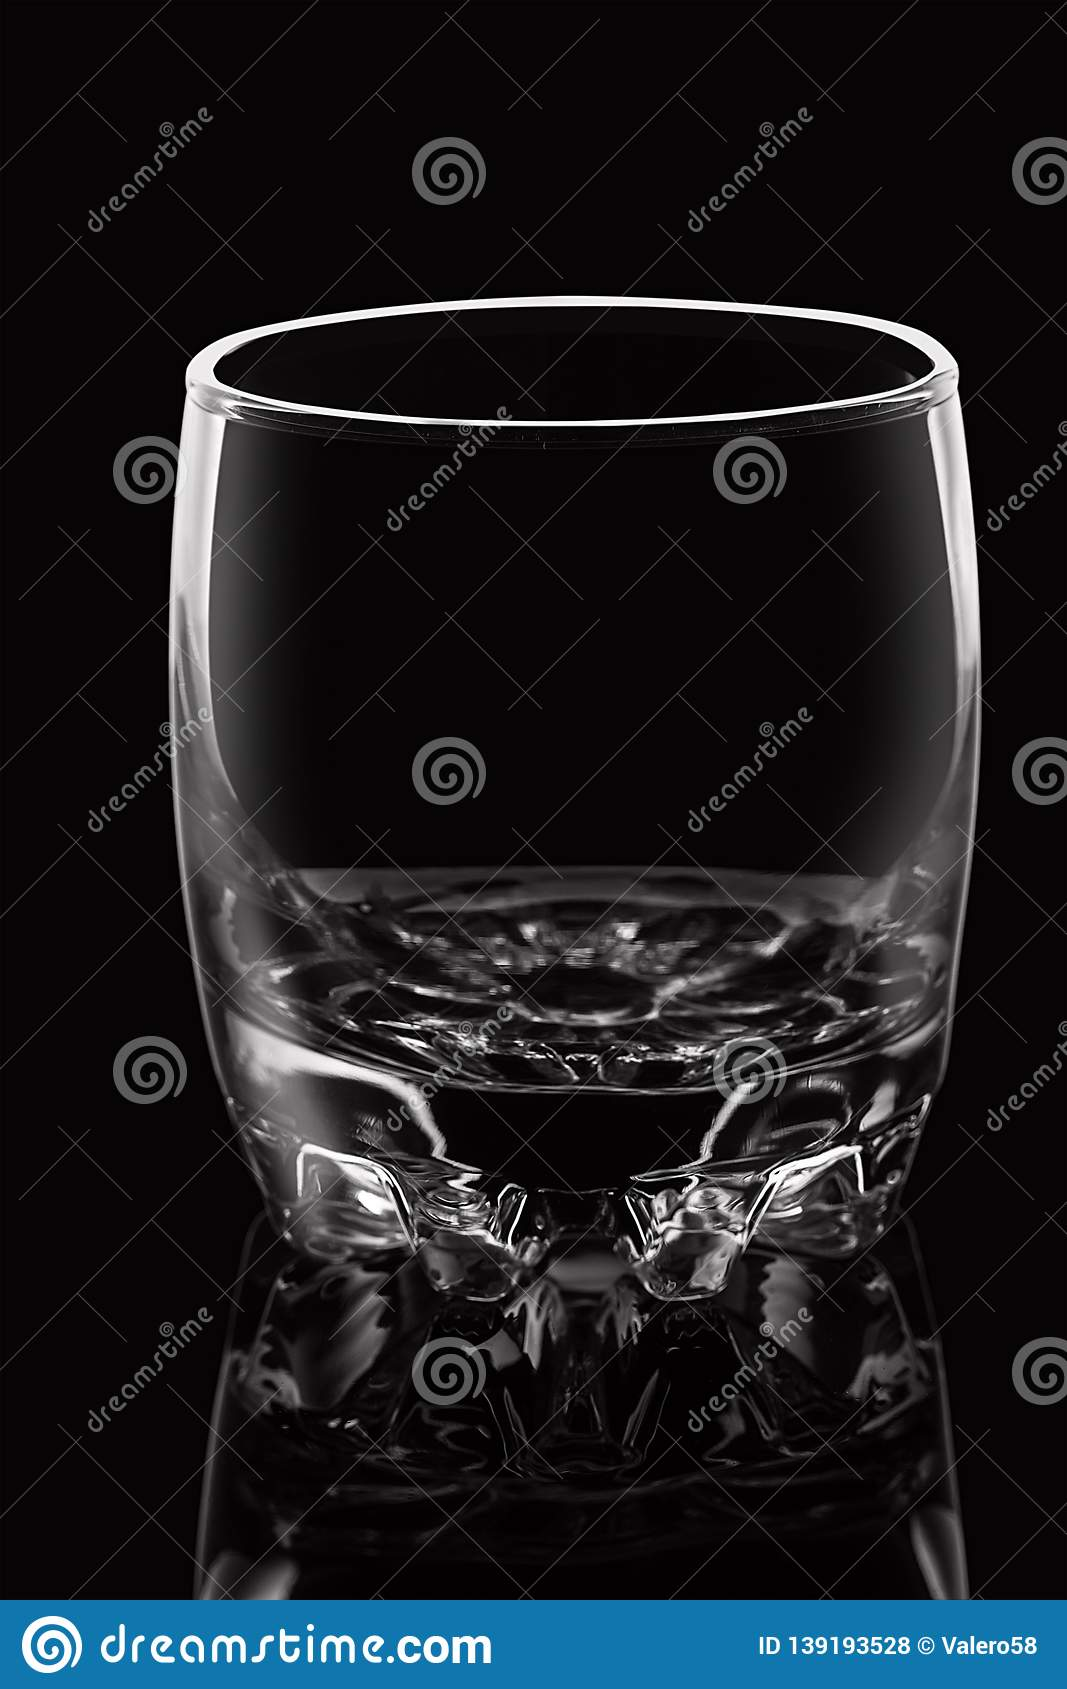 Empty glass on black background with highlights.